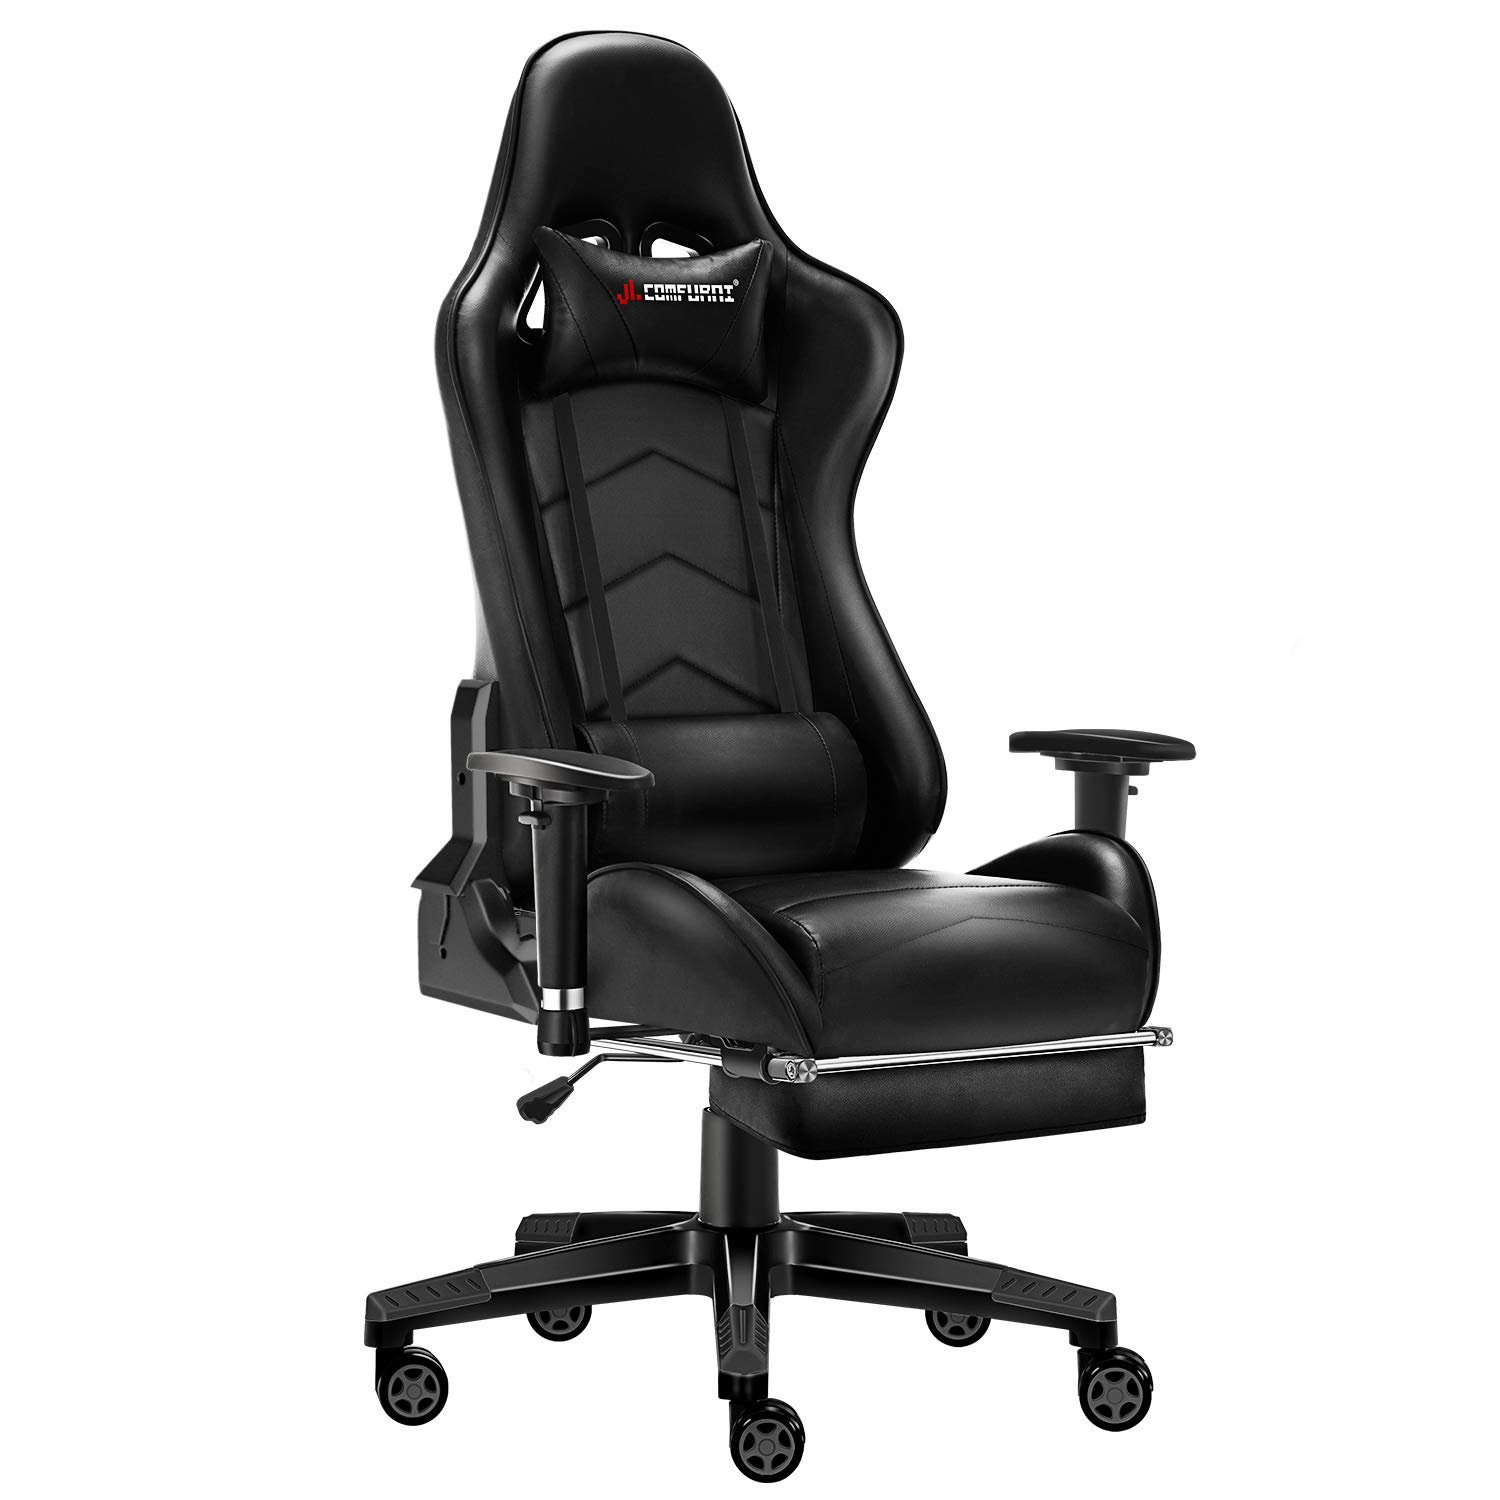 JL Comfurni Gaming Chair with Footrest Office Chair Reclining High-Back Ergonomic PU Leather Desk Chair Racing Swivel Computer Chair with Adjustable Headrest and Lumbar Support for Adults Black by JL Comfurni